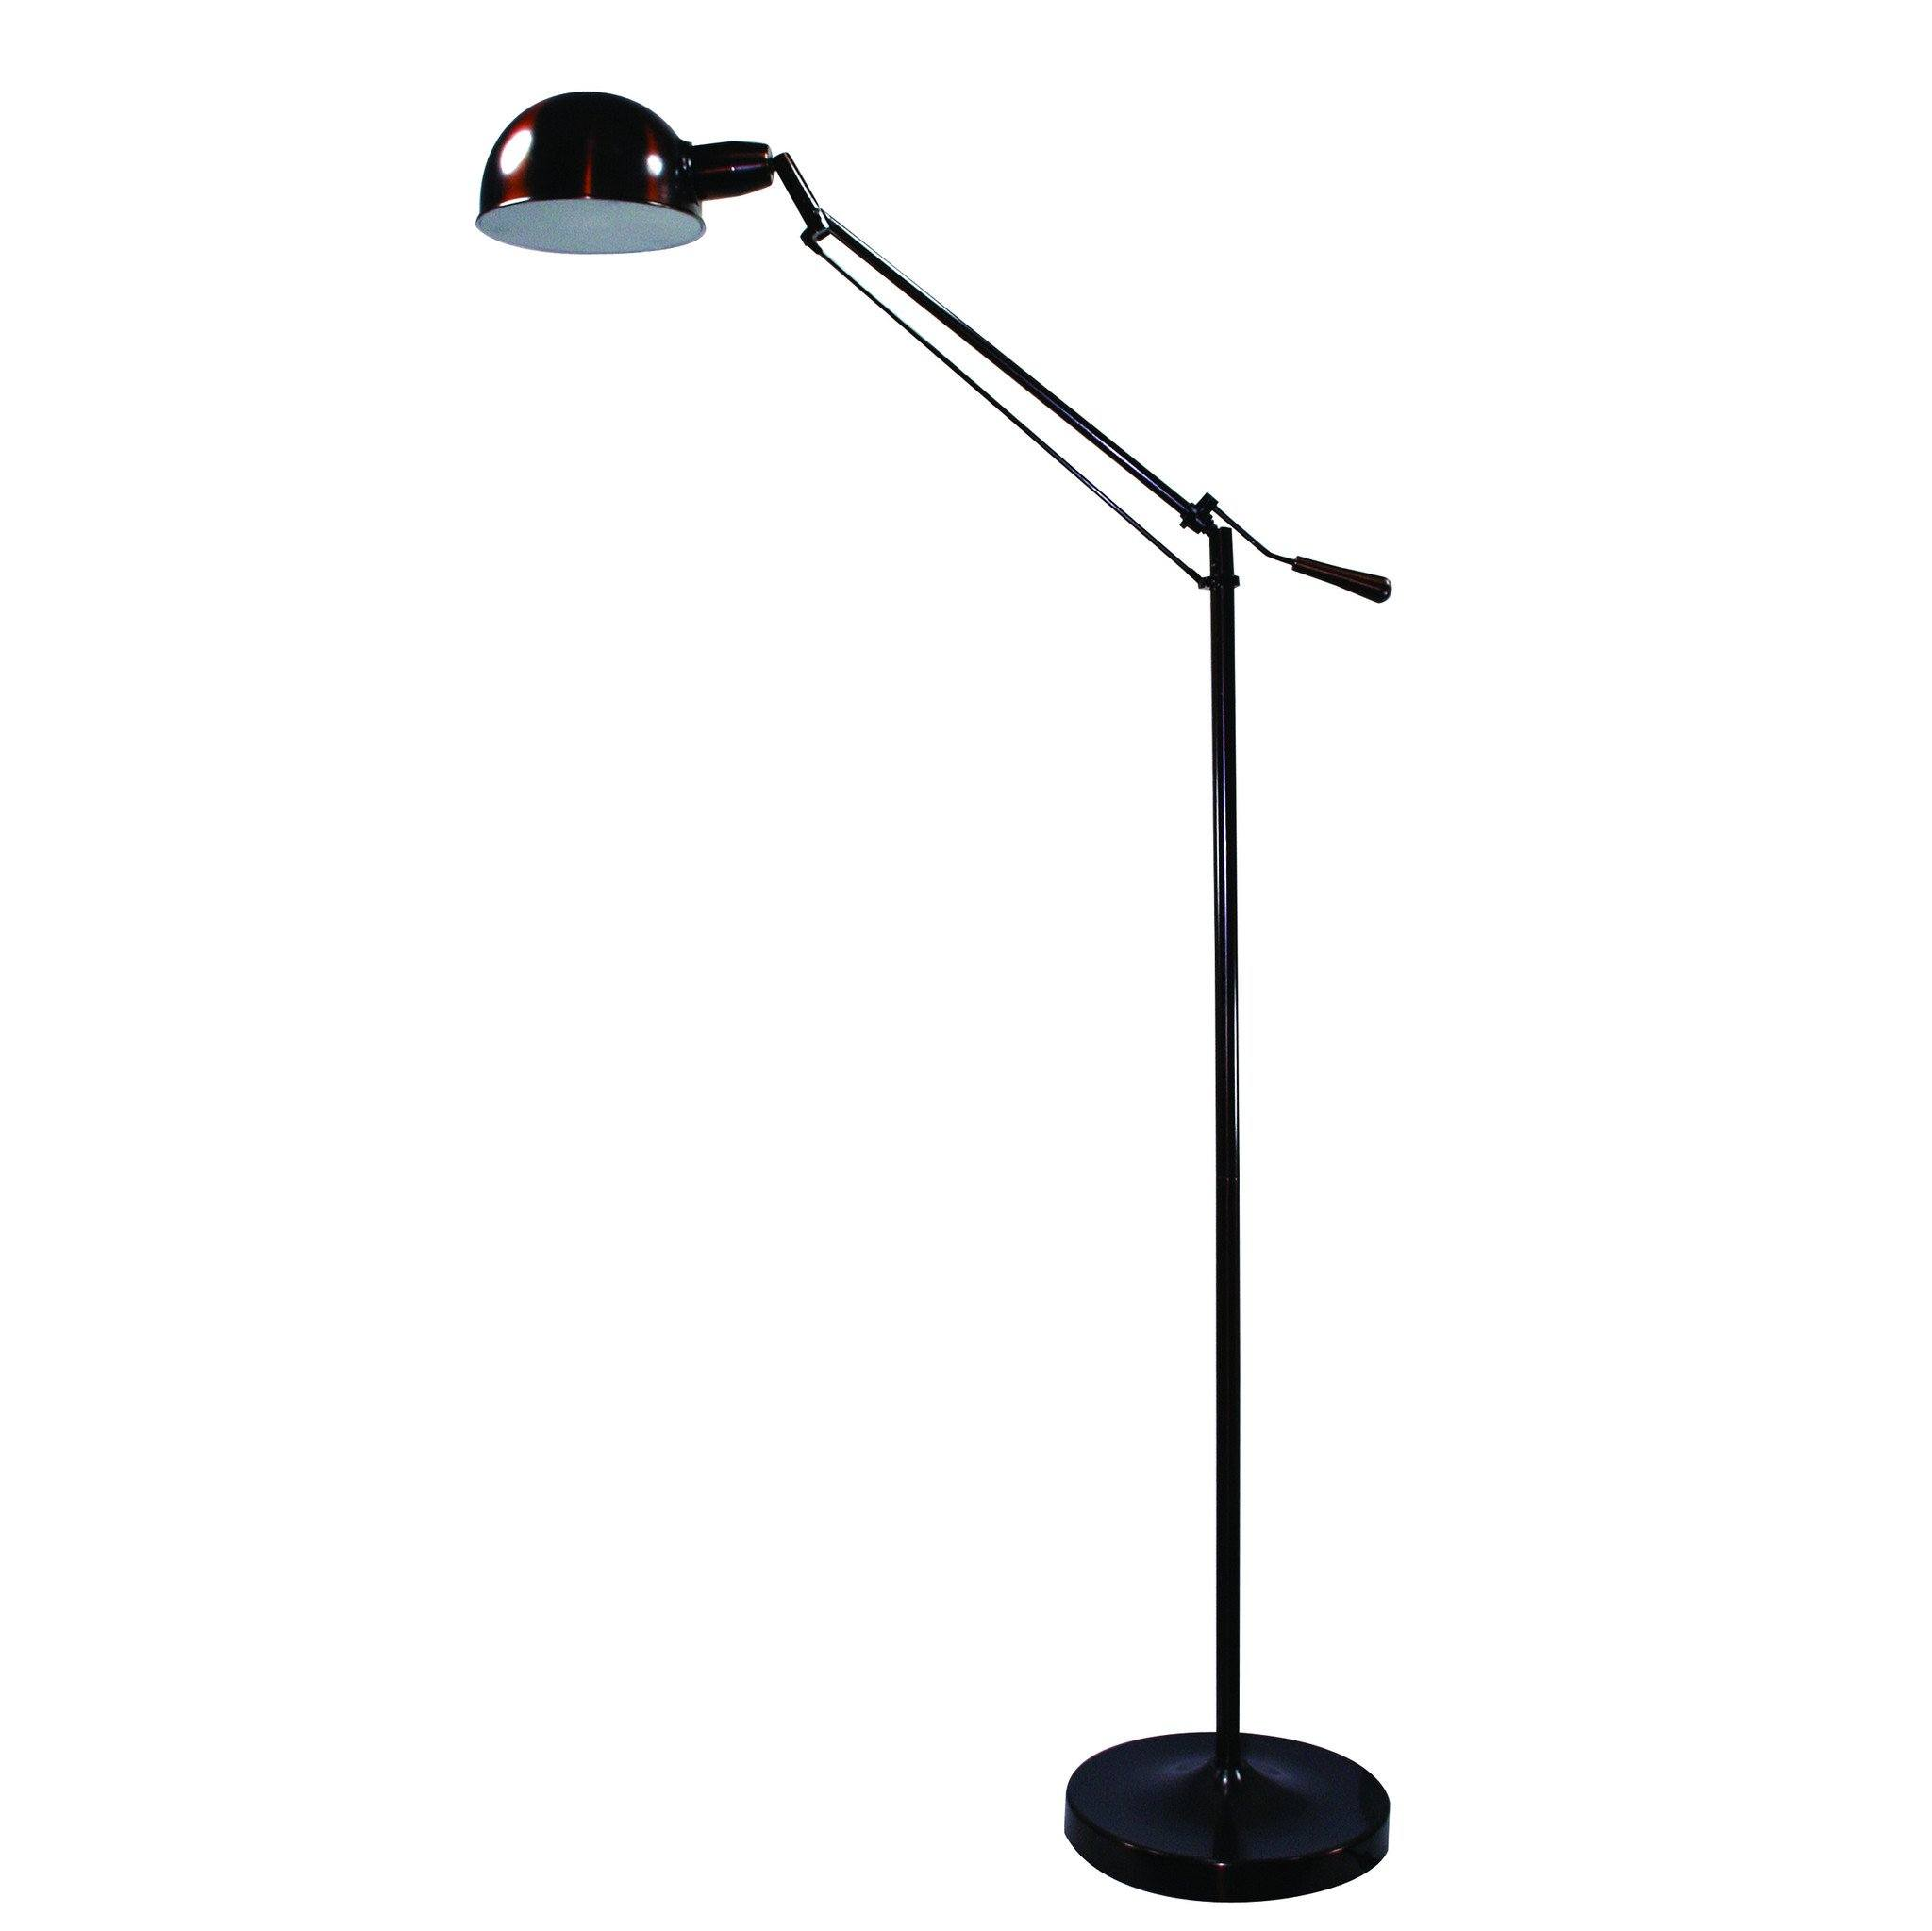 lamps shades uncategorized shelves adessor round adesso red canada awesome tier amusing floor black verilux lamp stewart with costco